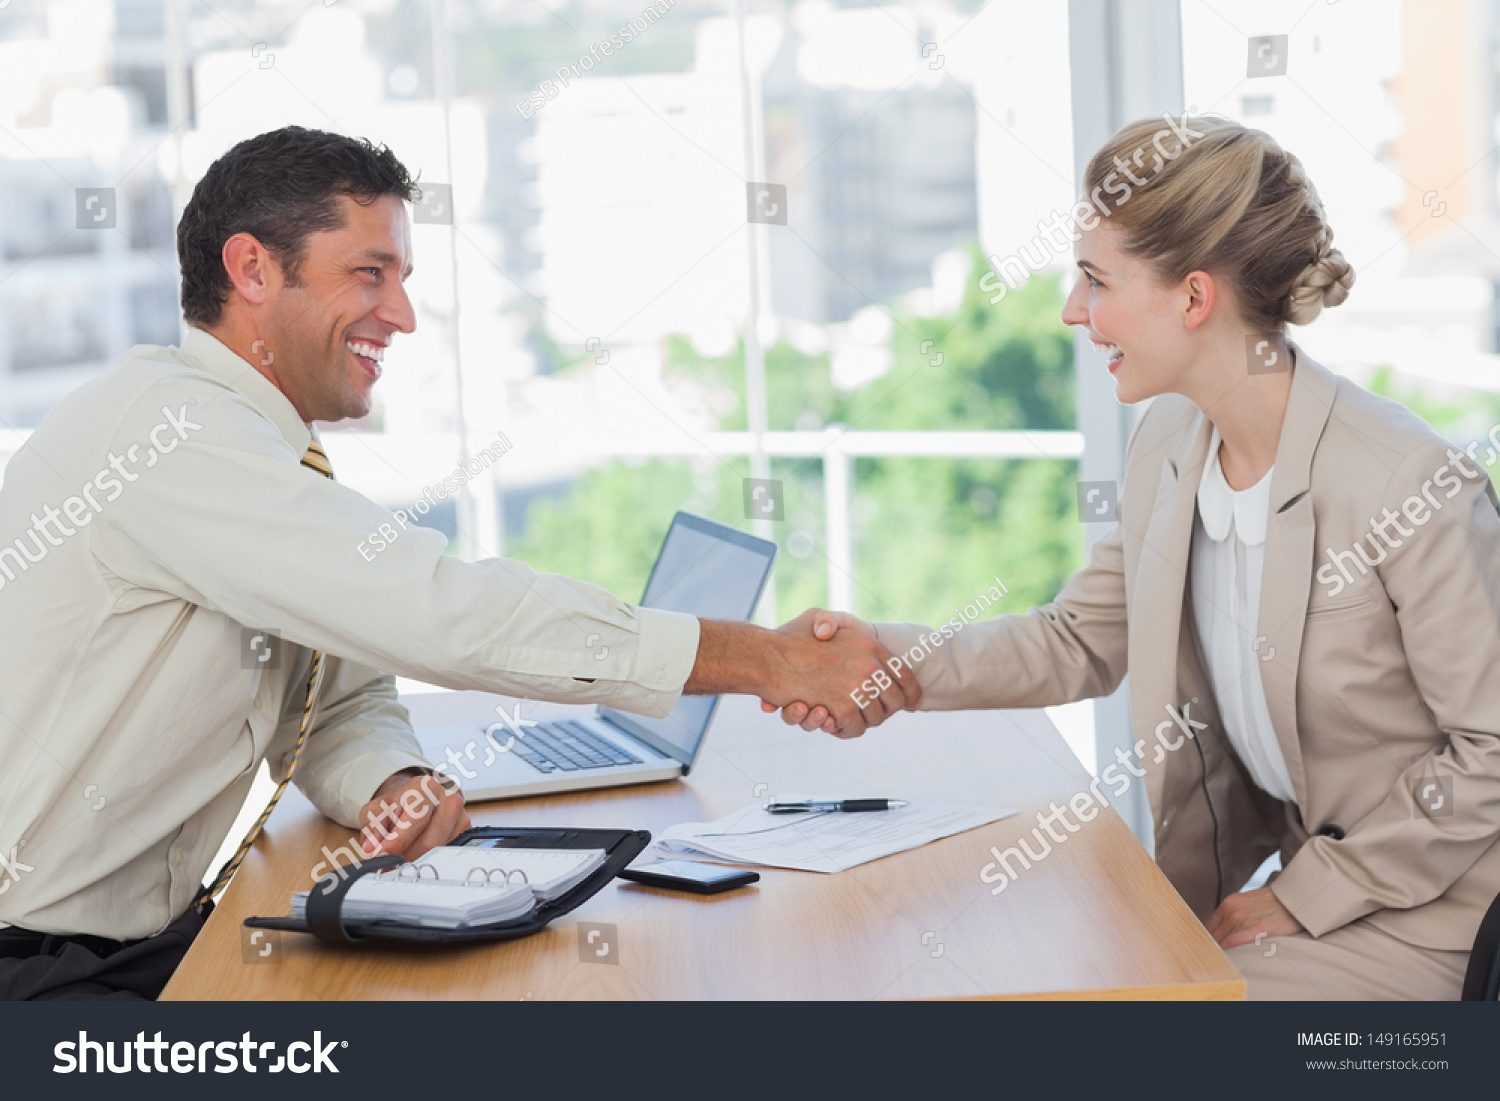 Bureau Interviewer Professionnel Blonde Woman Shaking Hands While Having Stock Photo